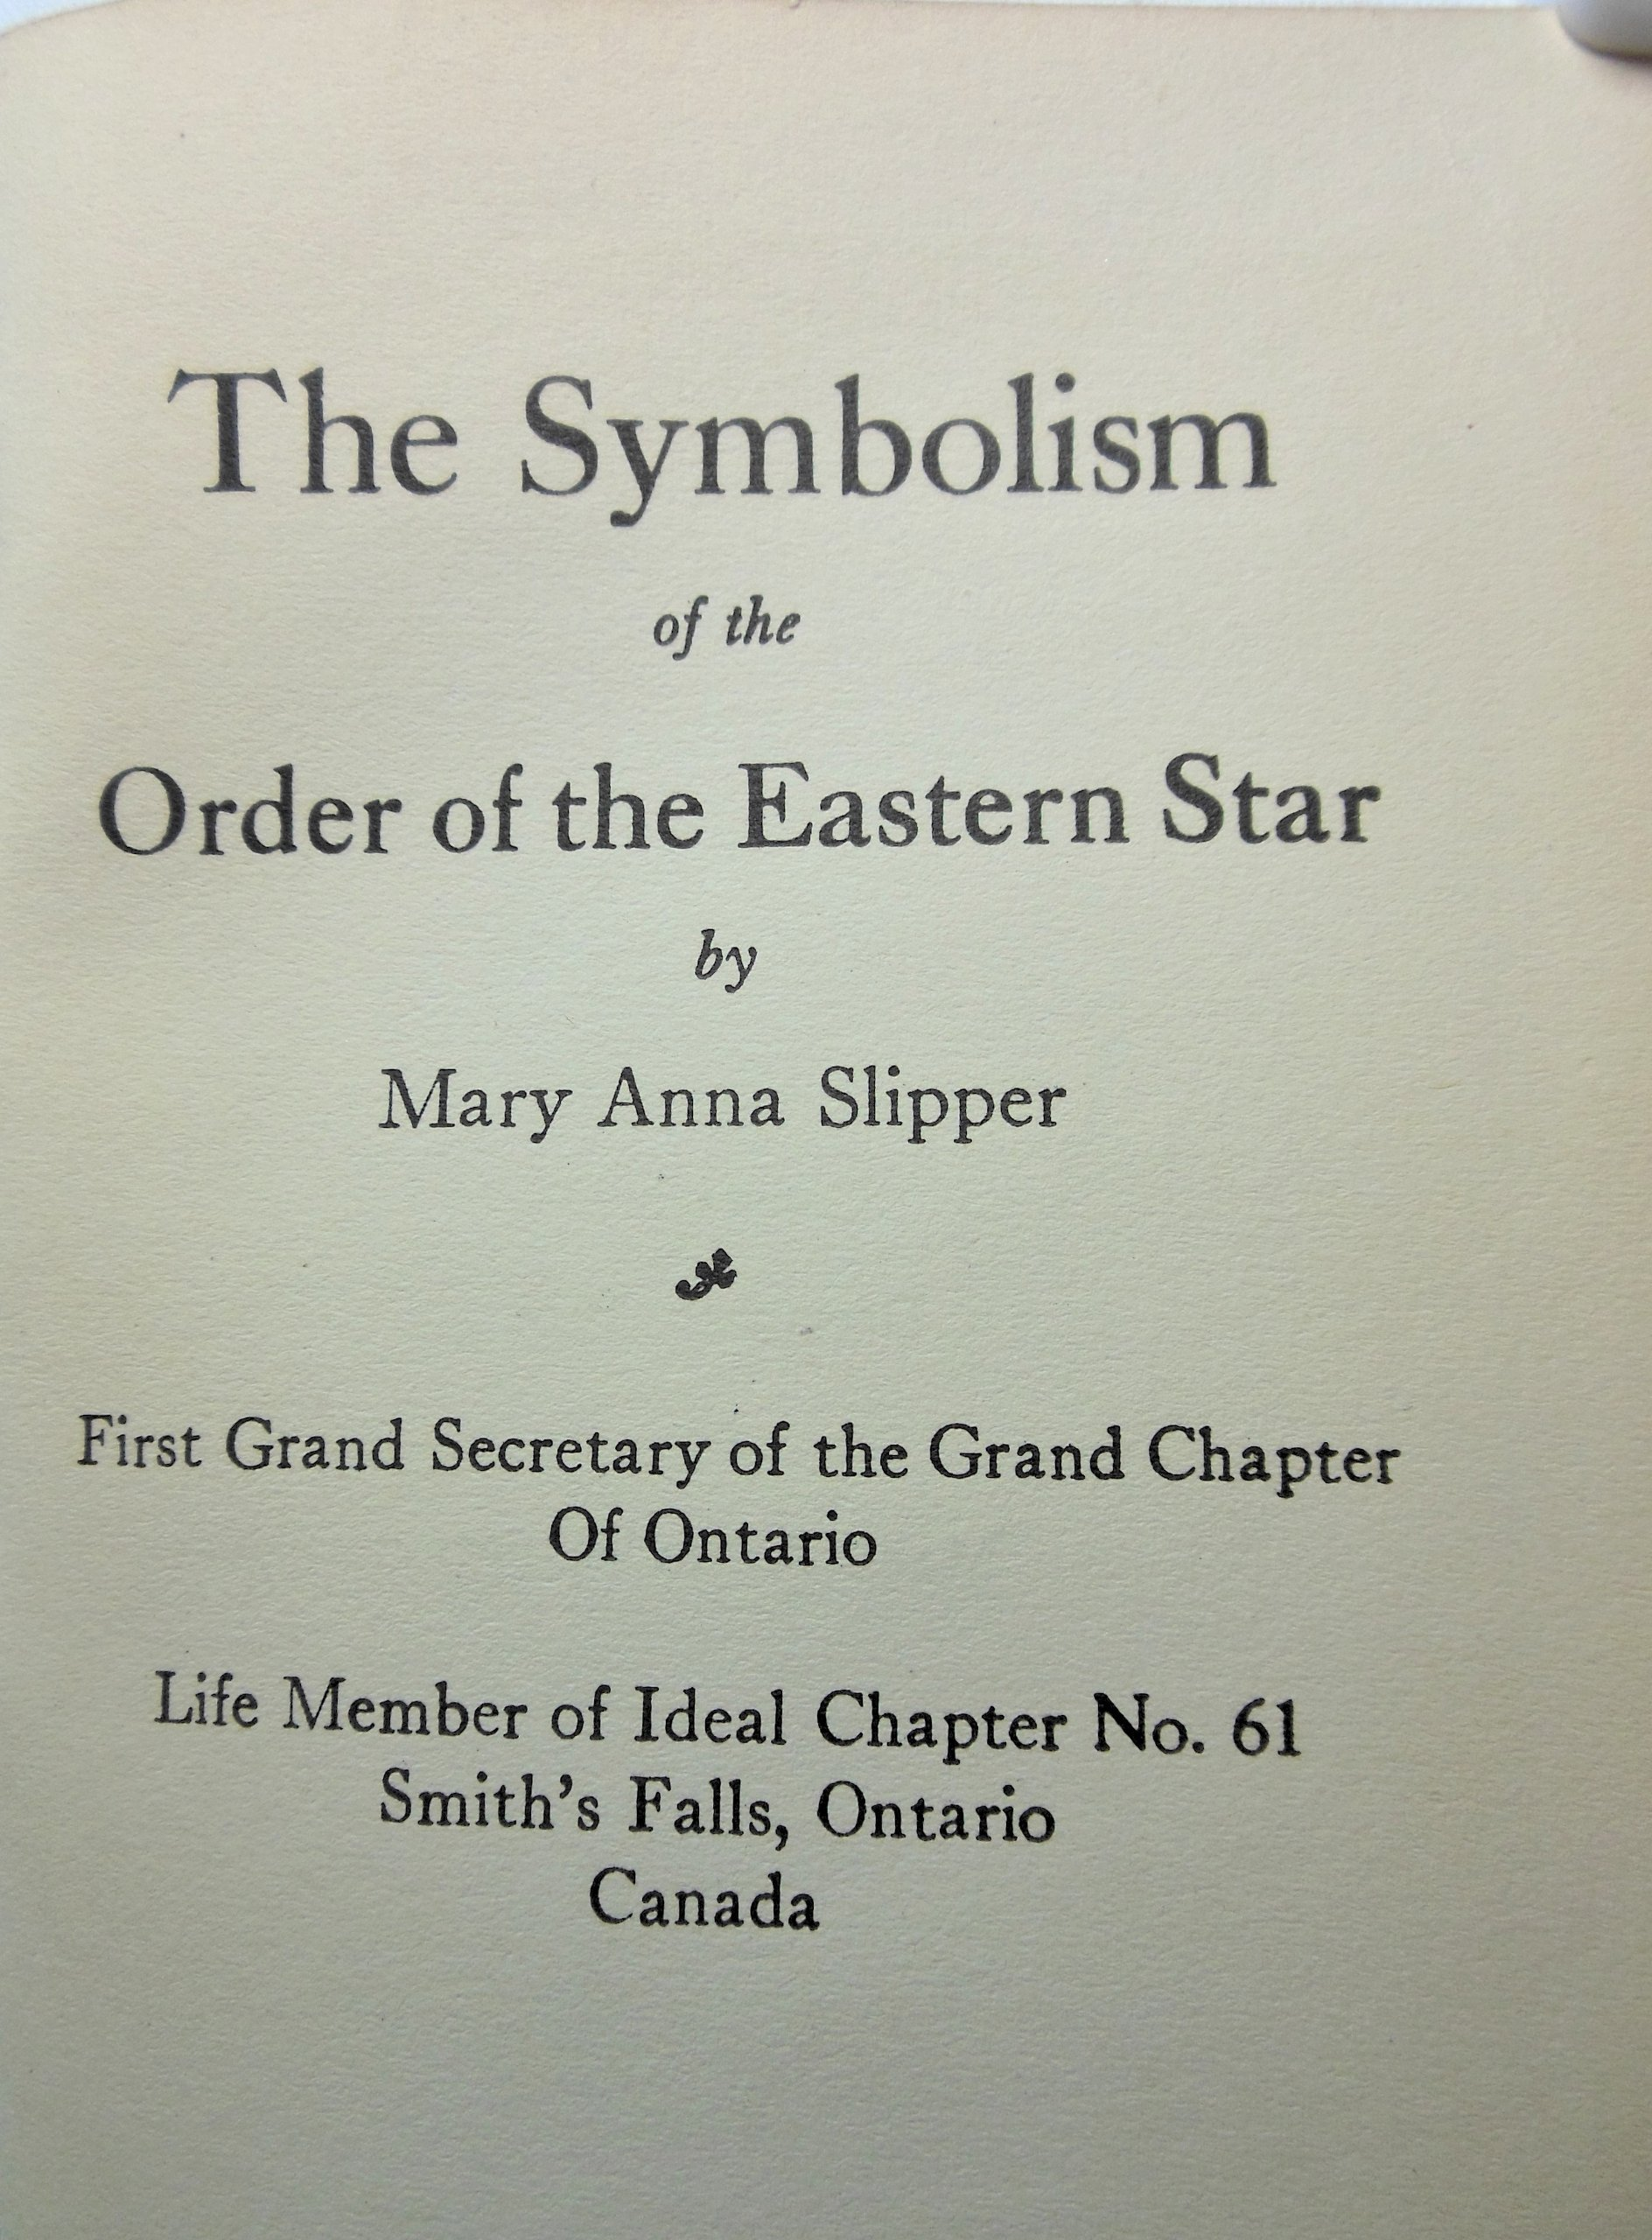 The Symbolism Of The Order Of The Eastern Star Mary Anna Slipper